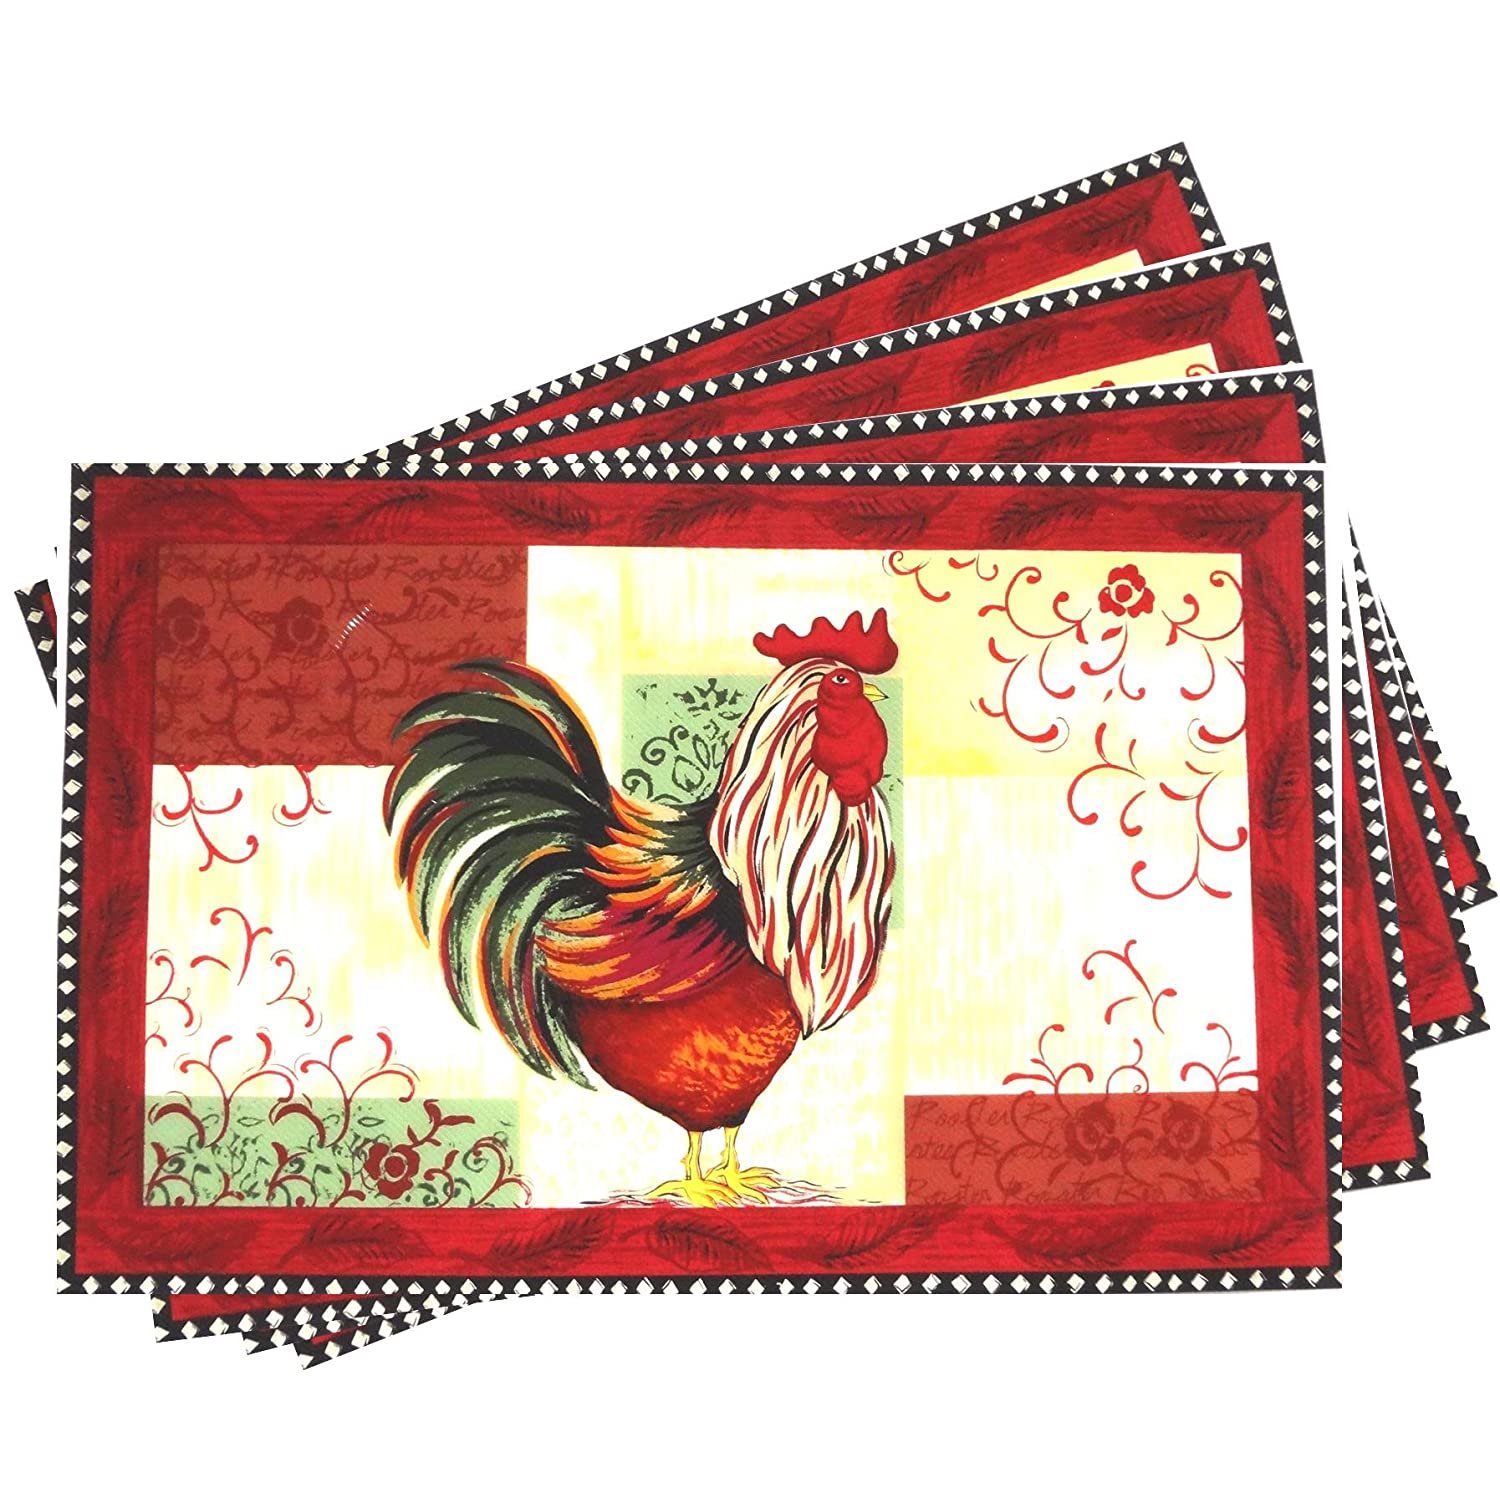 Easy to Clean Anti-Skid Vinyl Plastic Placemats with Red Rooster Decor Set of 4